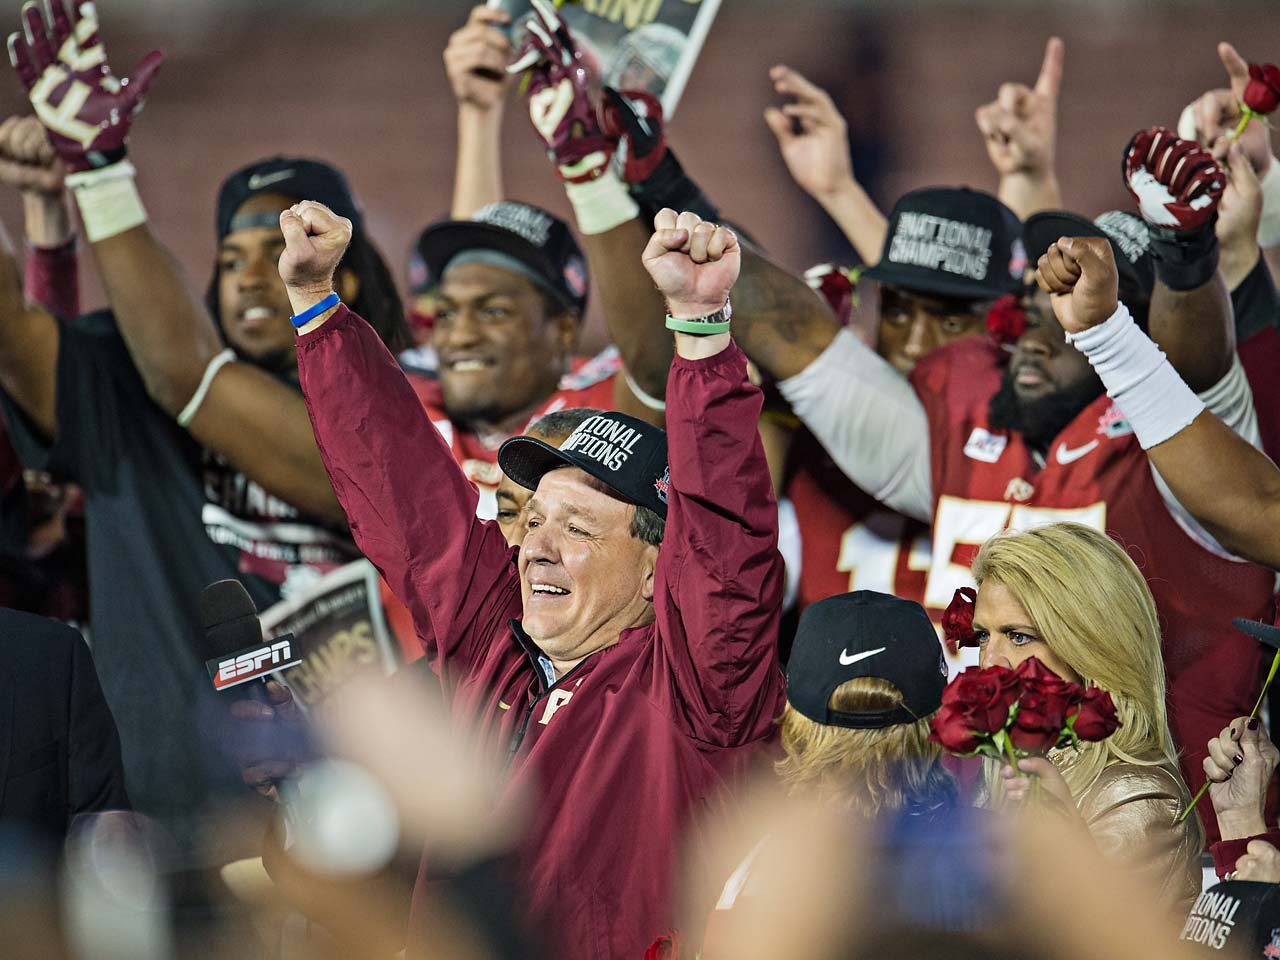 Jimbo Fisher and Florida State players with their hands in the air after they received the national championship trophy following their victory over Auburn.  It's a great achievement for Coach Fisher, as it's the storied coach's first-ever national title in a coaching career spanning more than 25 years.